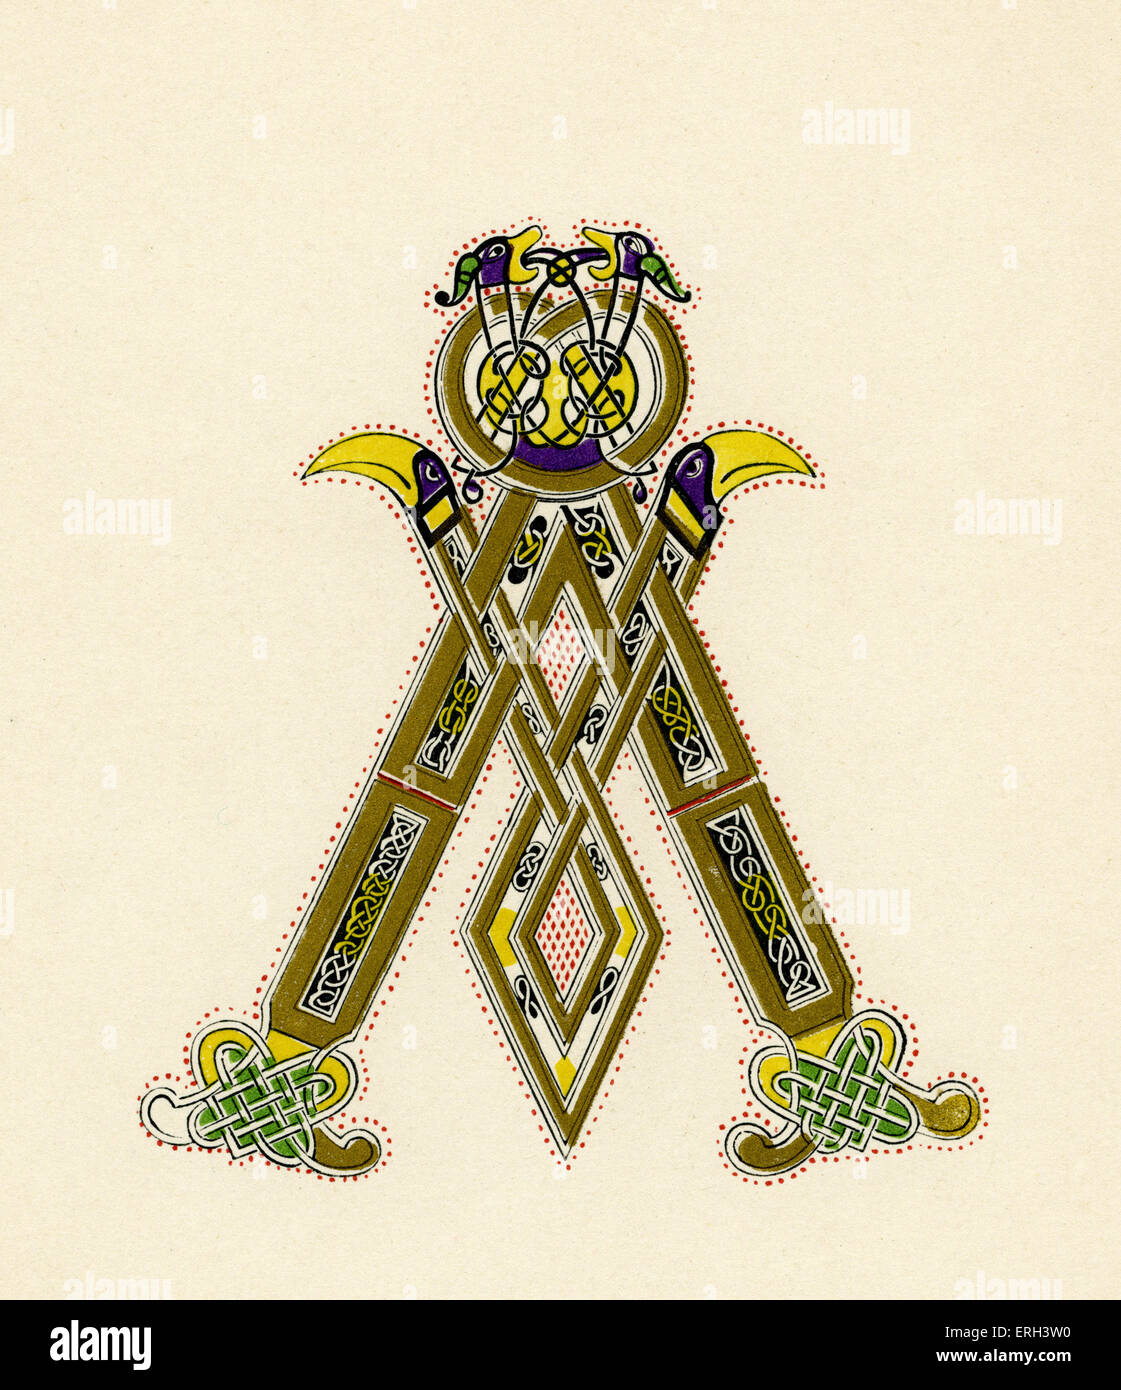 Illuminated letter A from the ninth-century bible of Charles the Bald. (1886 source). - Stock Image